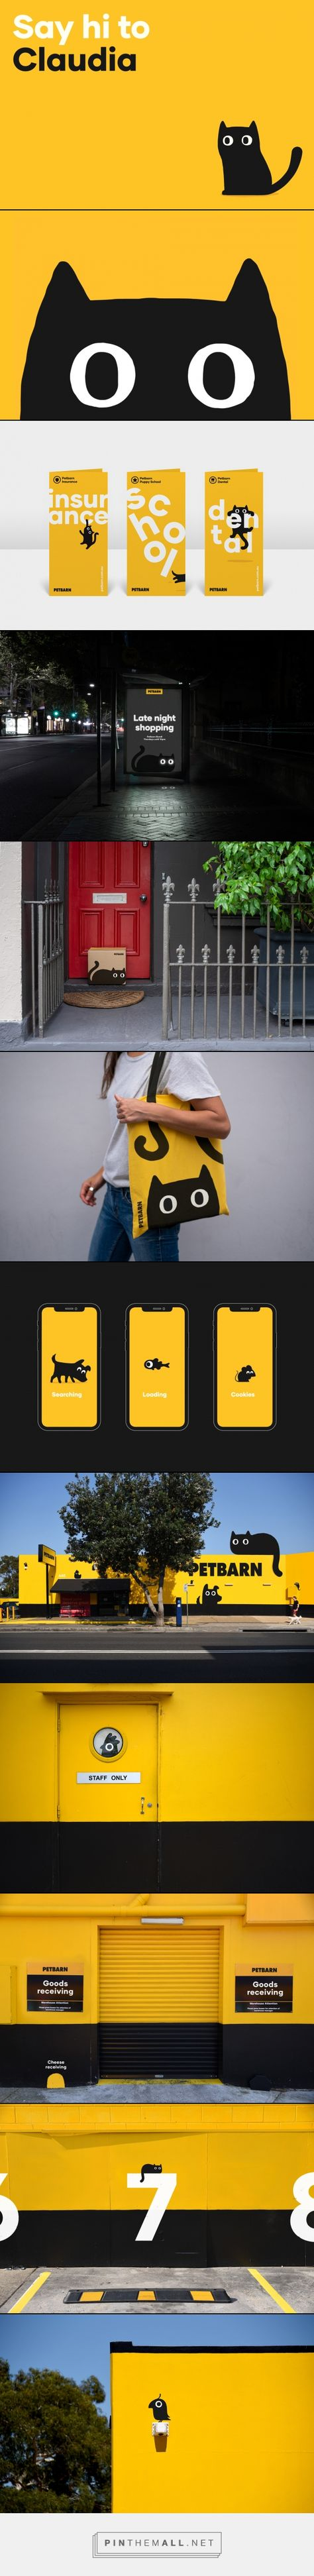 Brand New New Identity For Petbarn By Landor A Grouped Images Picture Pin Th Visual Identity Design Logo Inspiration Branding Branding Design